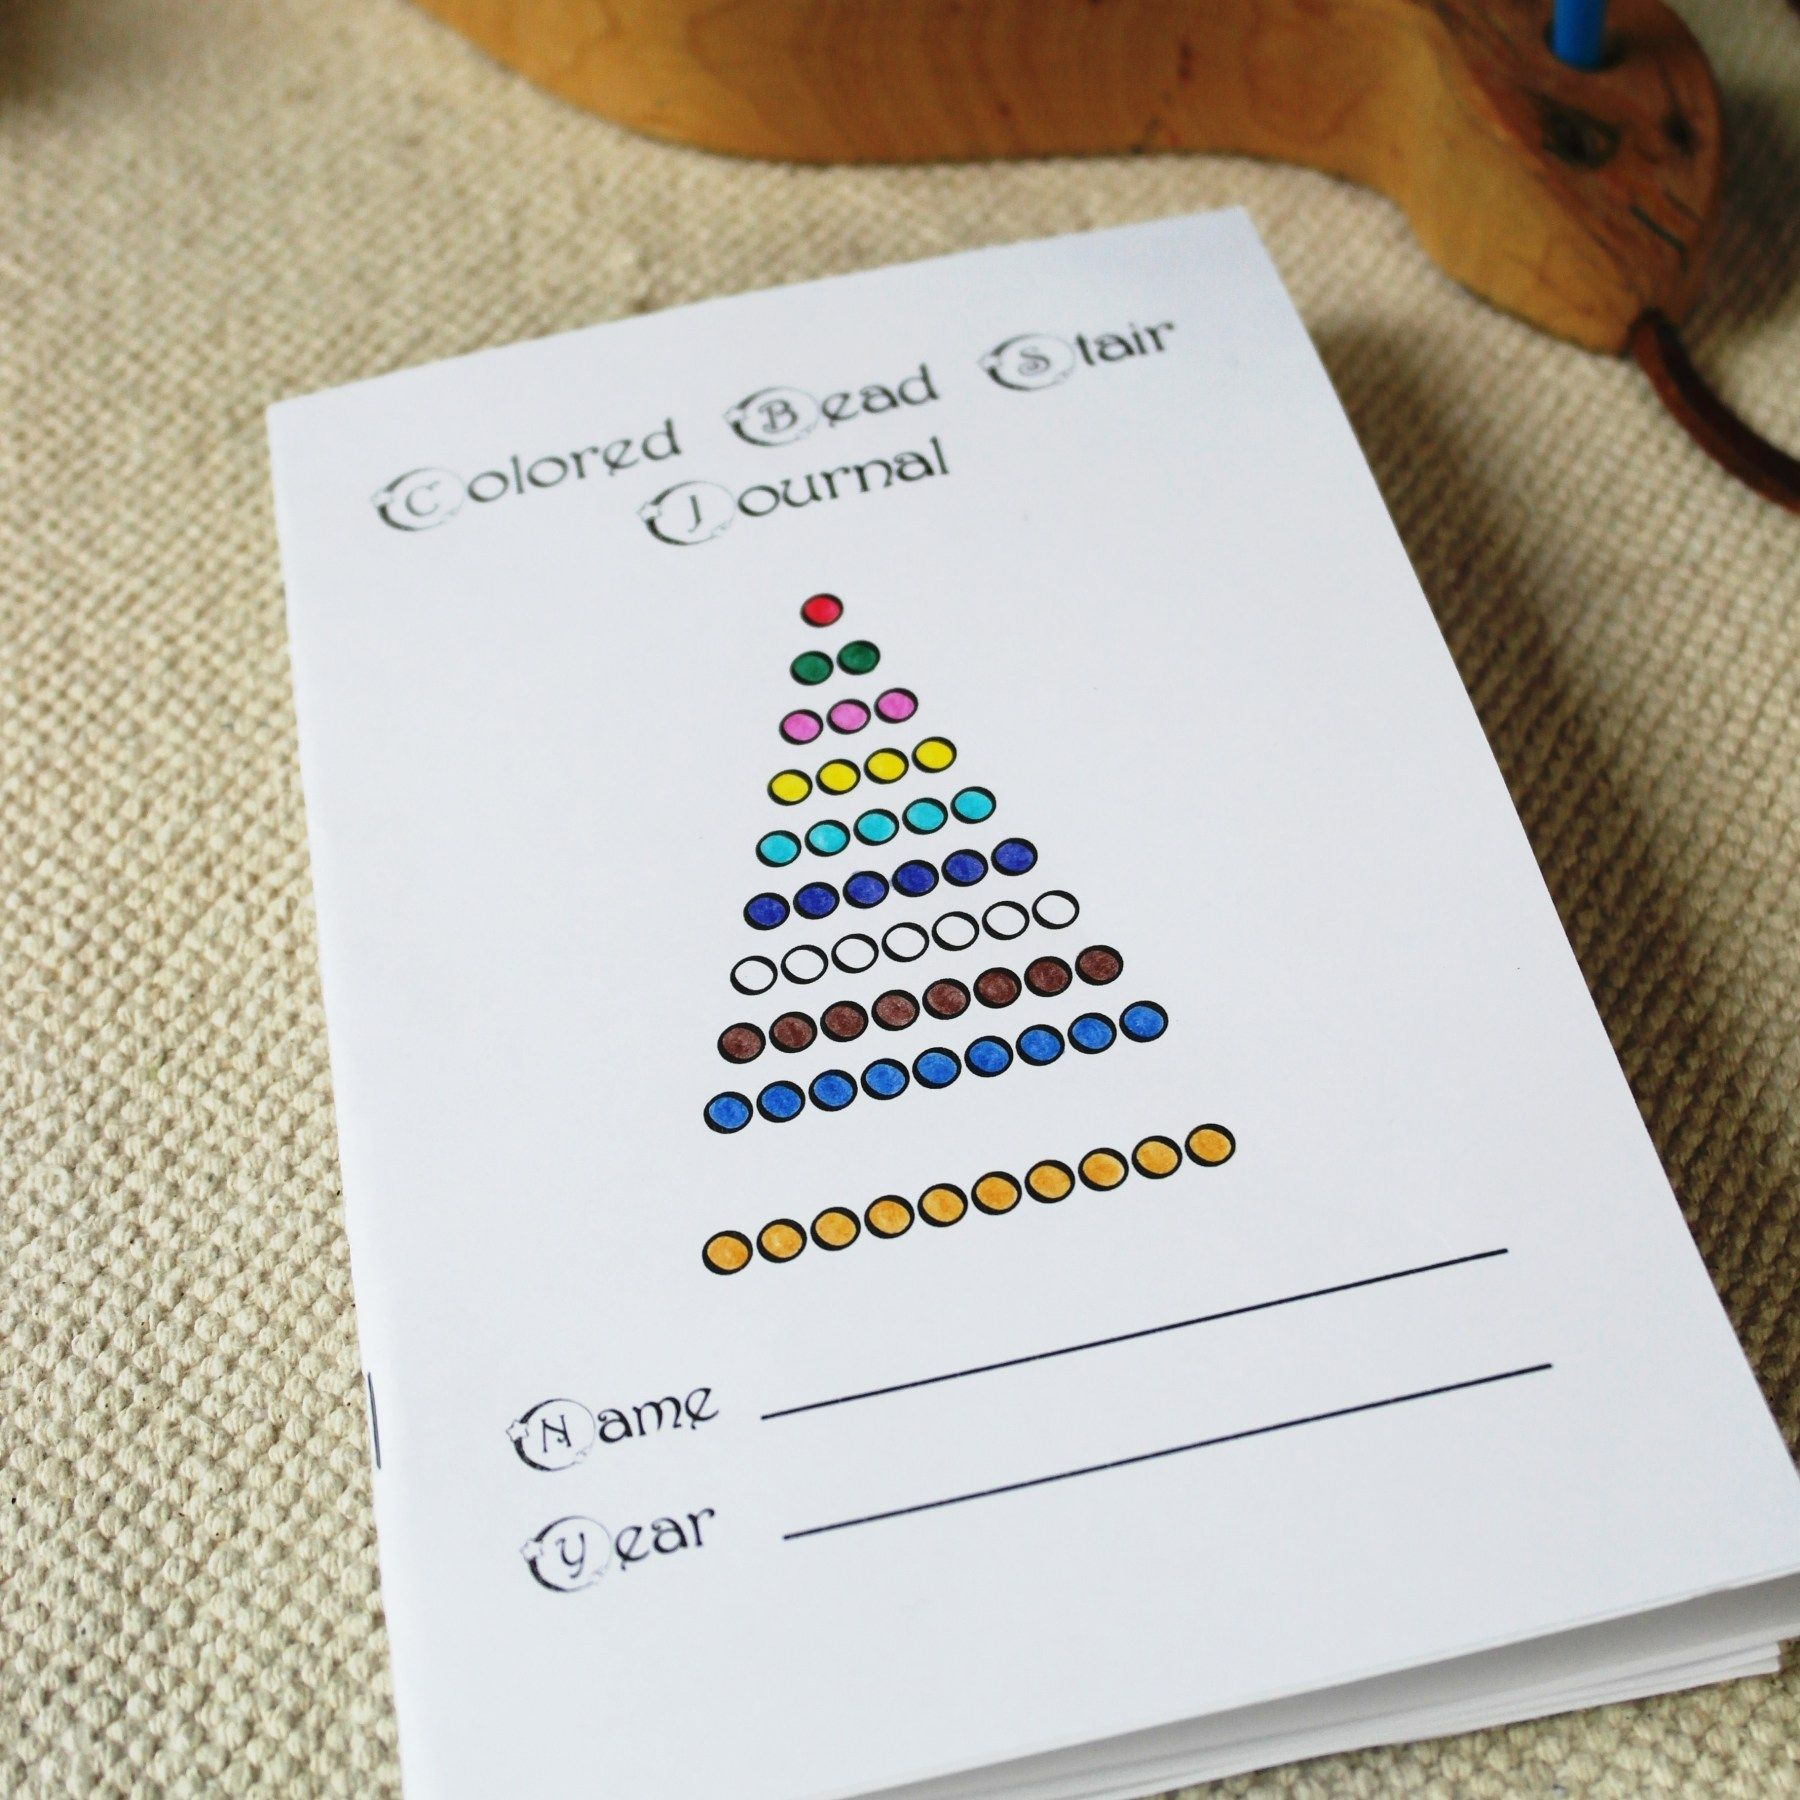 Colored Bead Stair Journal